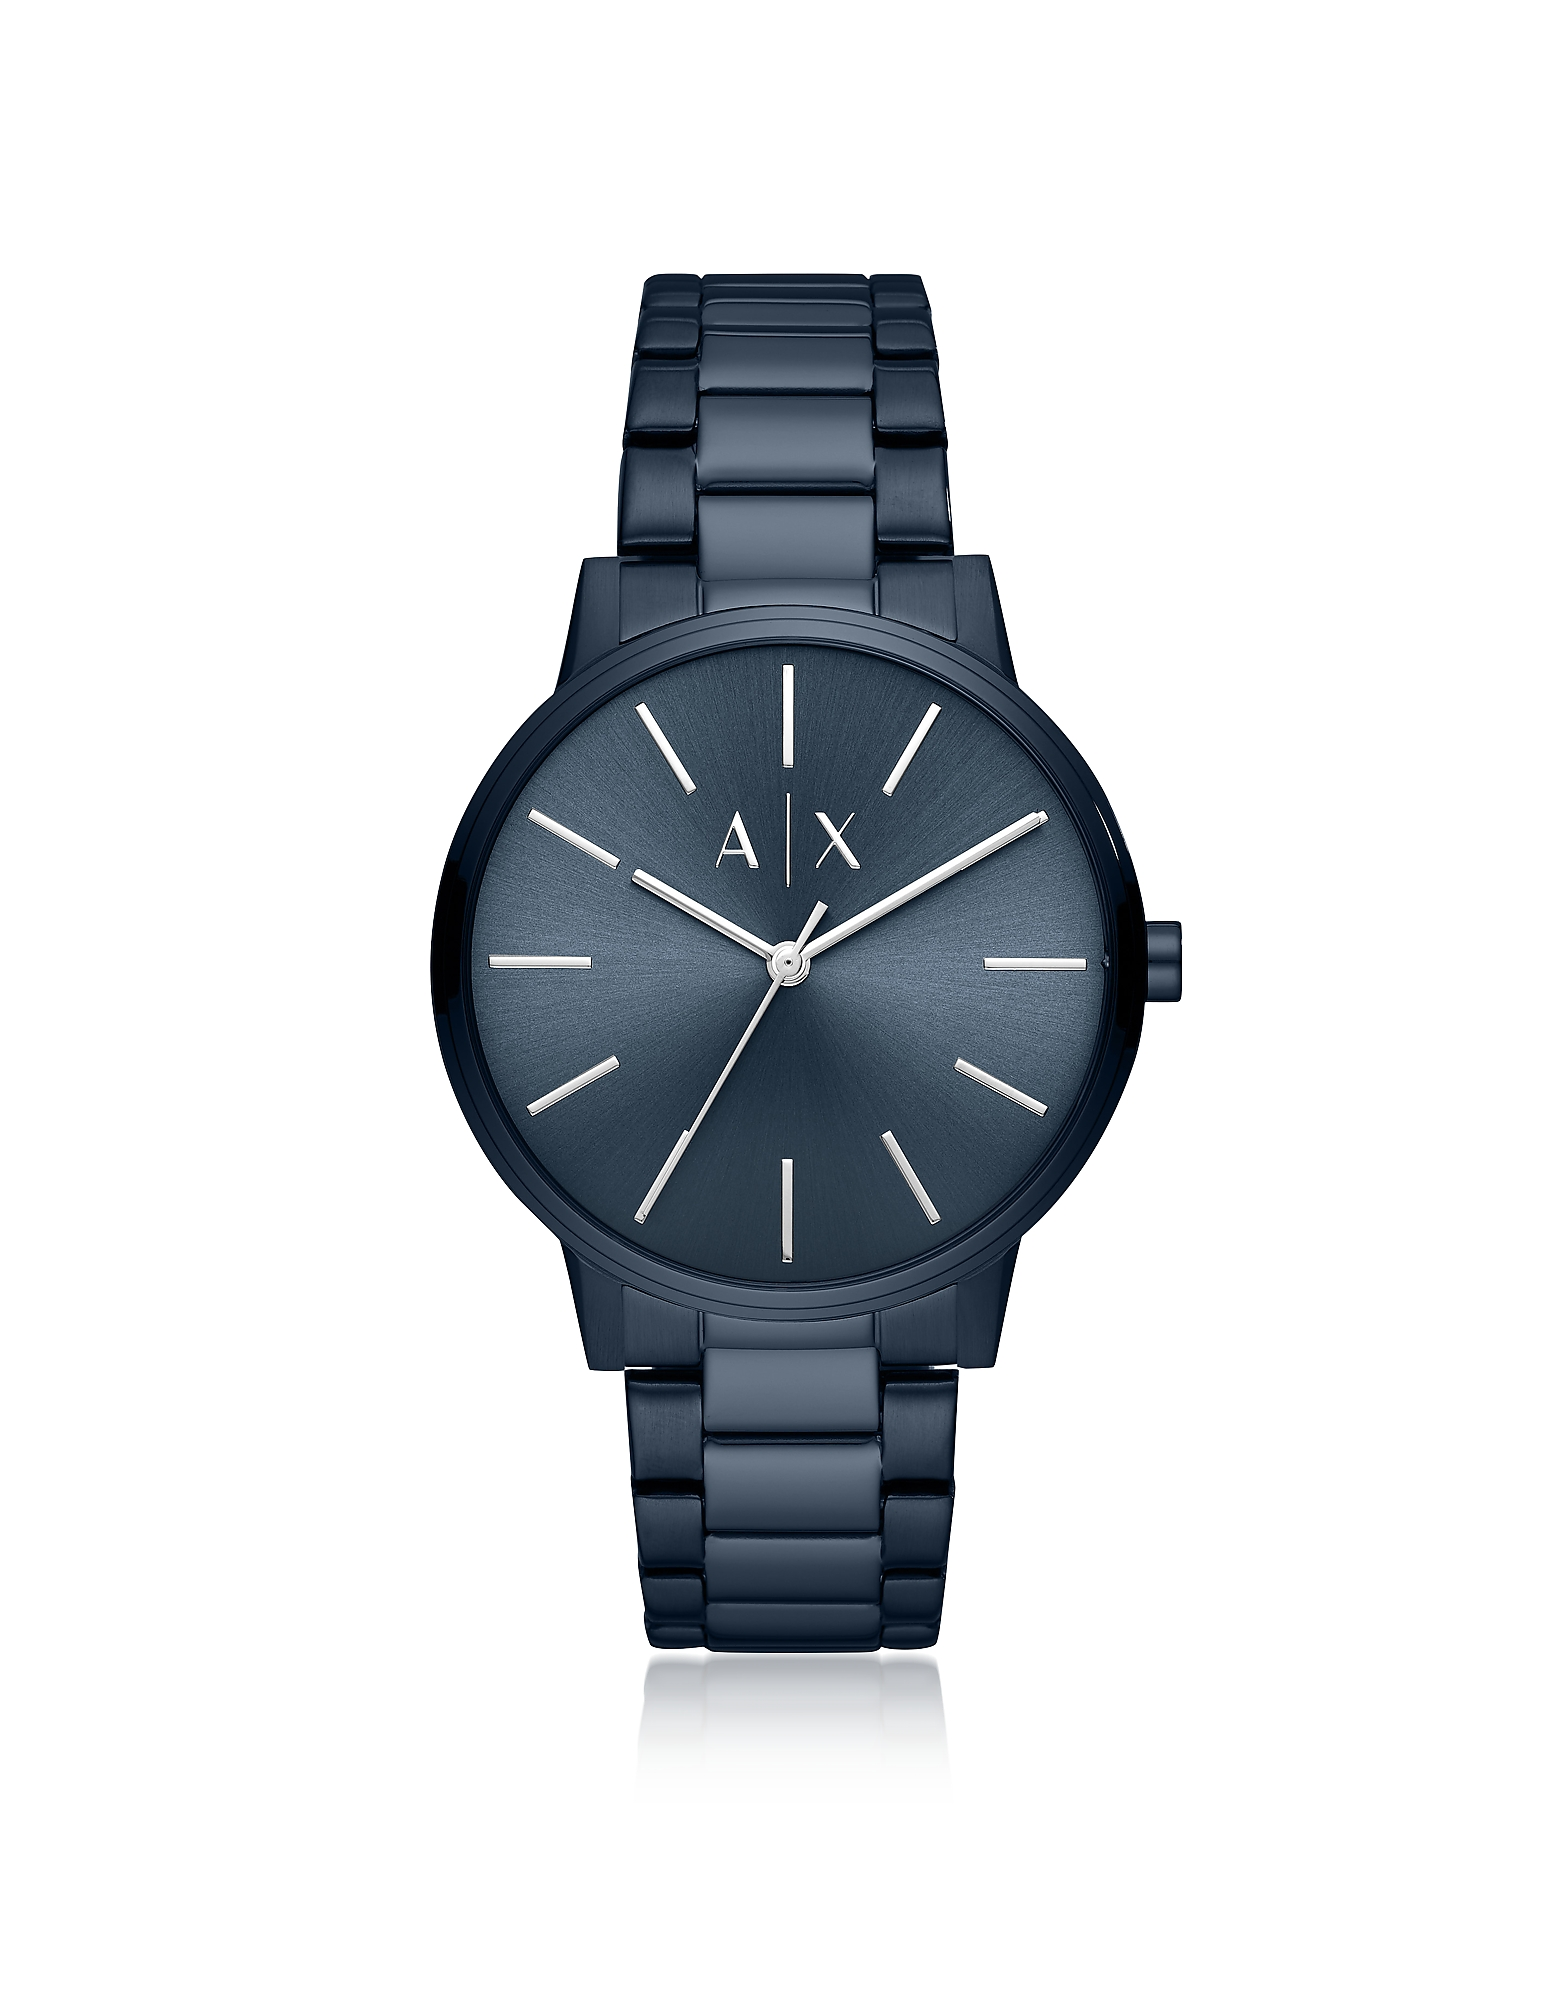 Emporio Armani Men's Watches, Cayde Blue Minimalist Men's Watch